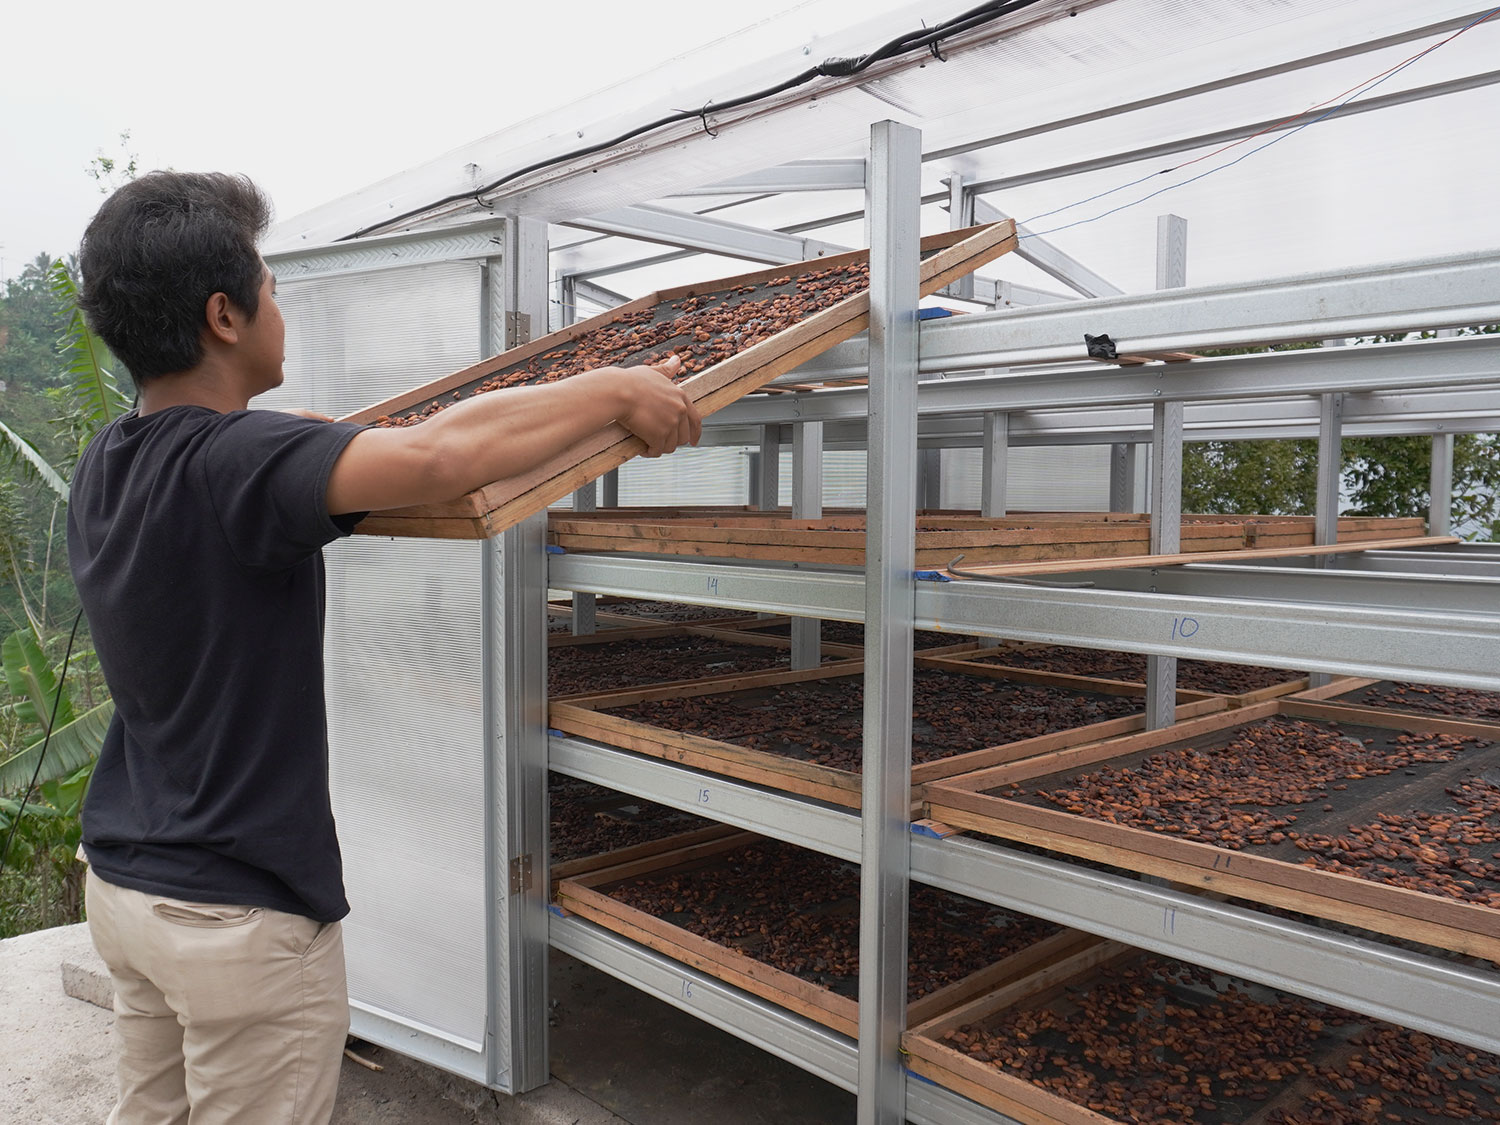 Solar Drying Solutions For Cacao And Coffee Smallholder Farmers In Tabanan, Bali